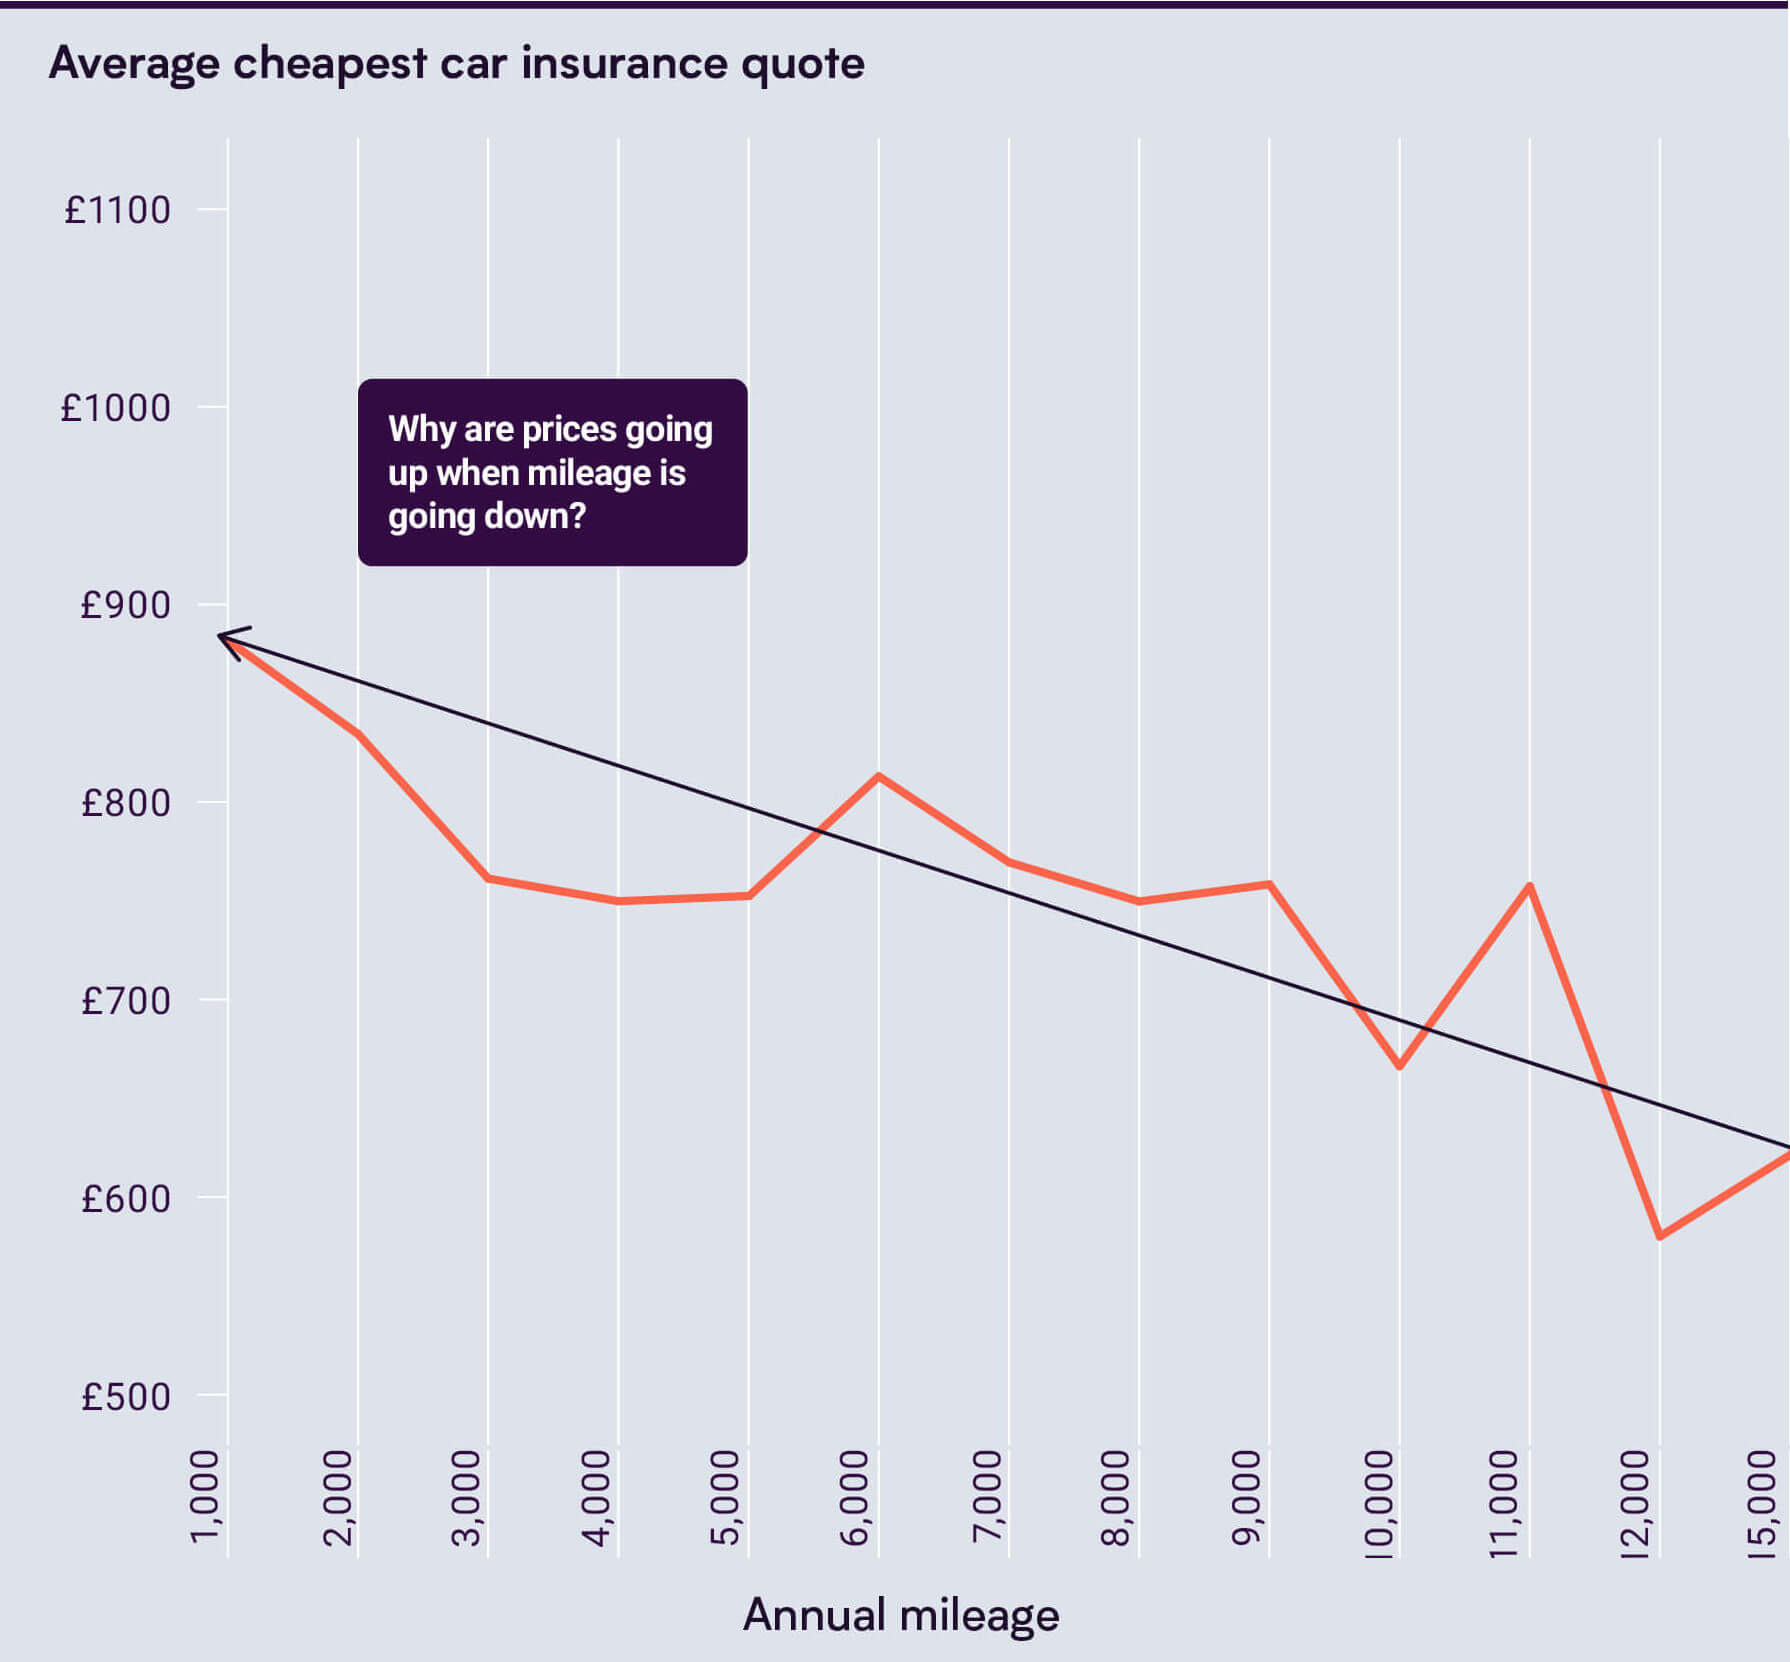 Graph of Cheapest Car Insurance Quote vs Annual Mileage